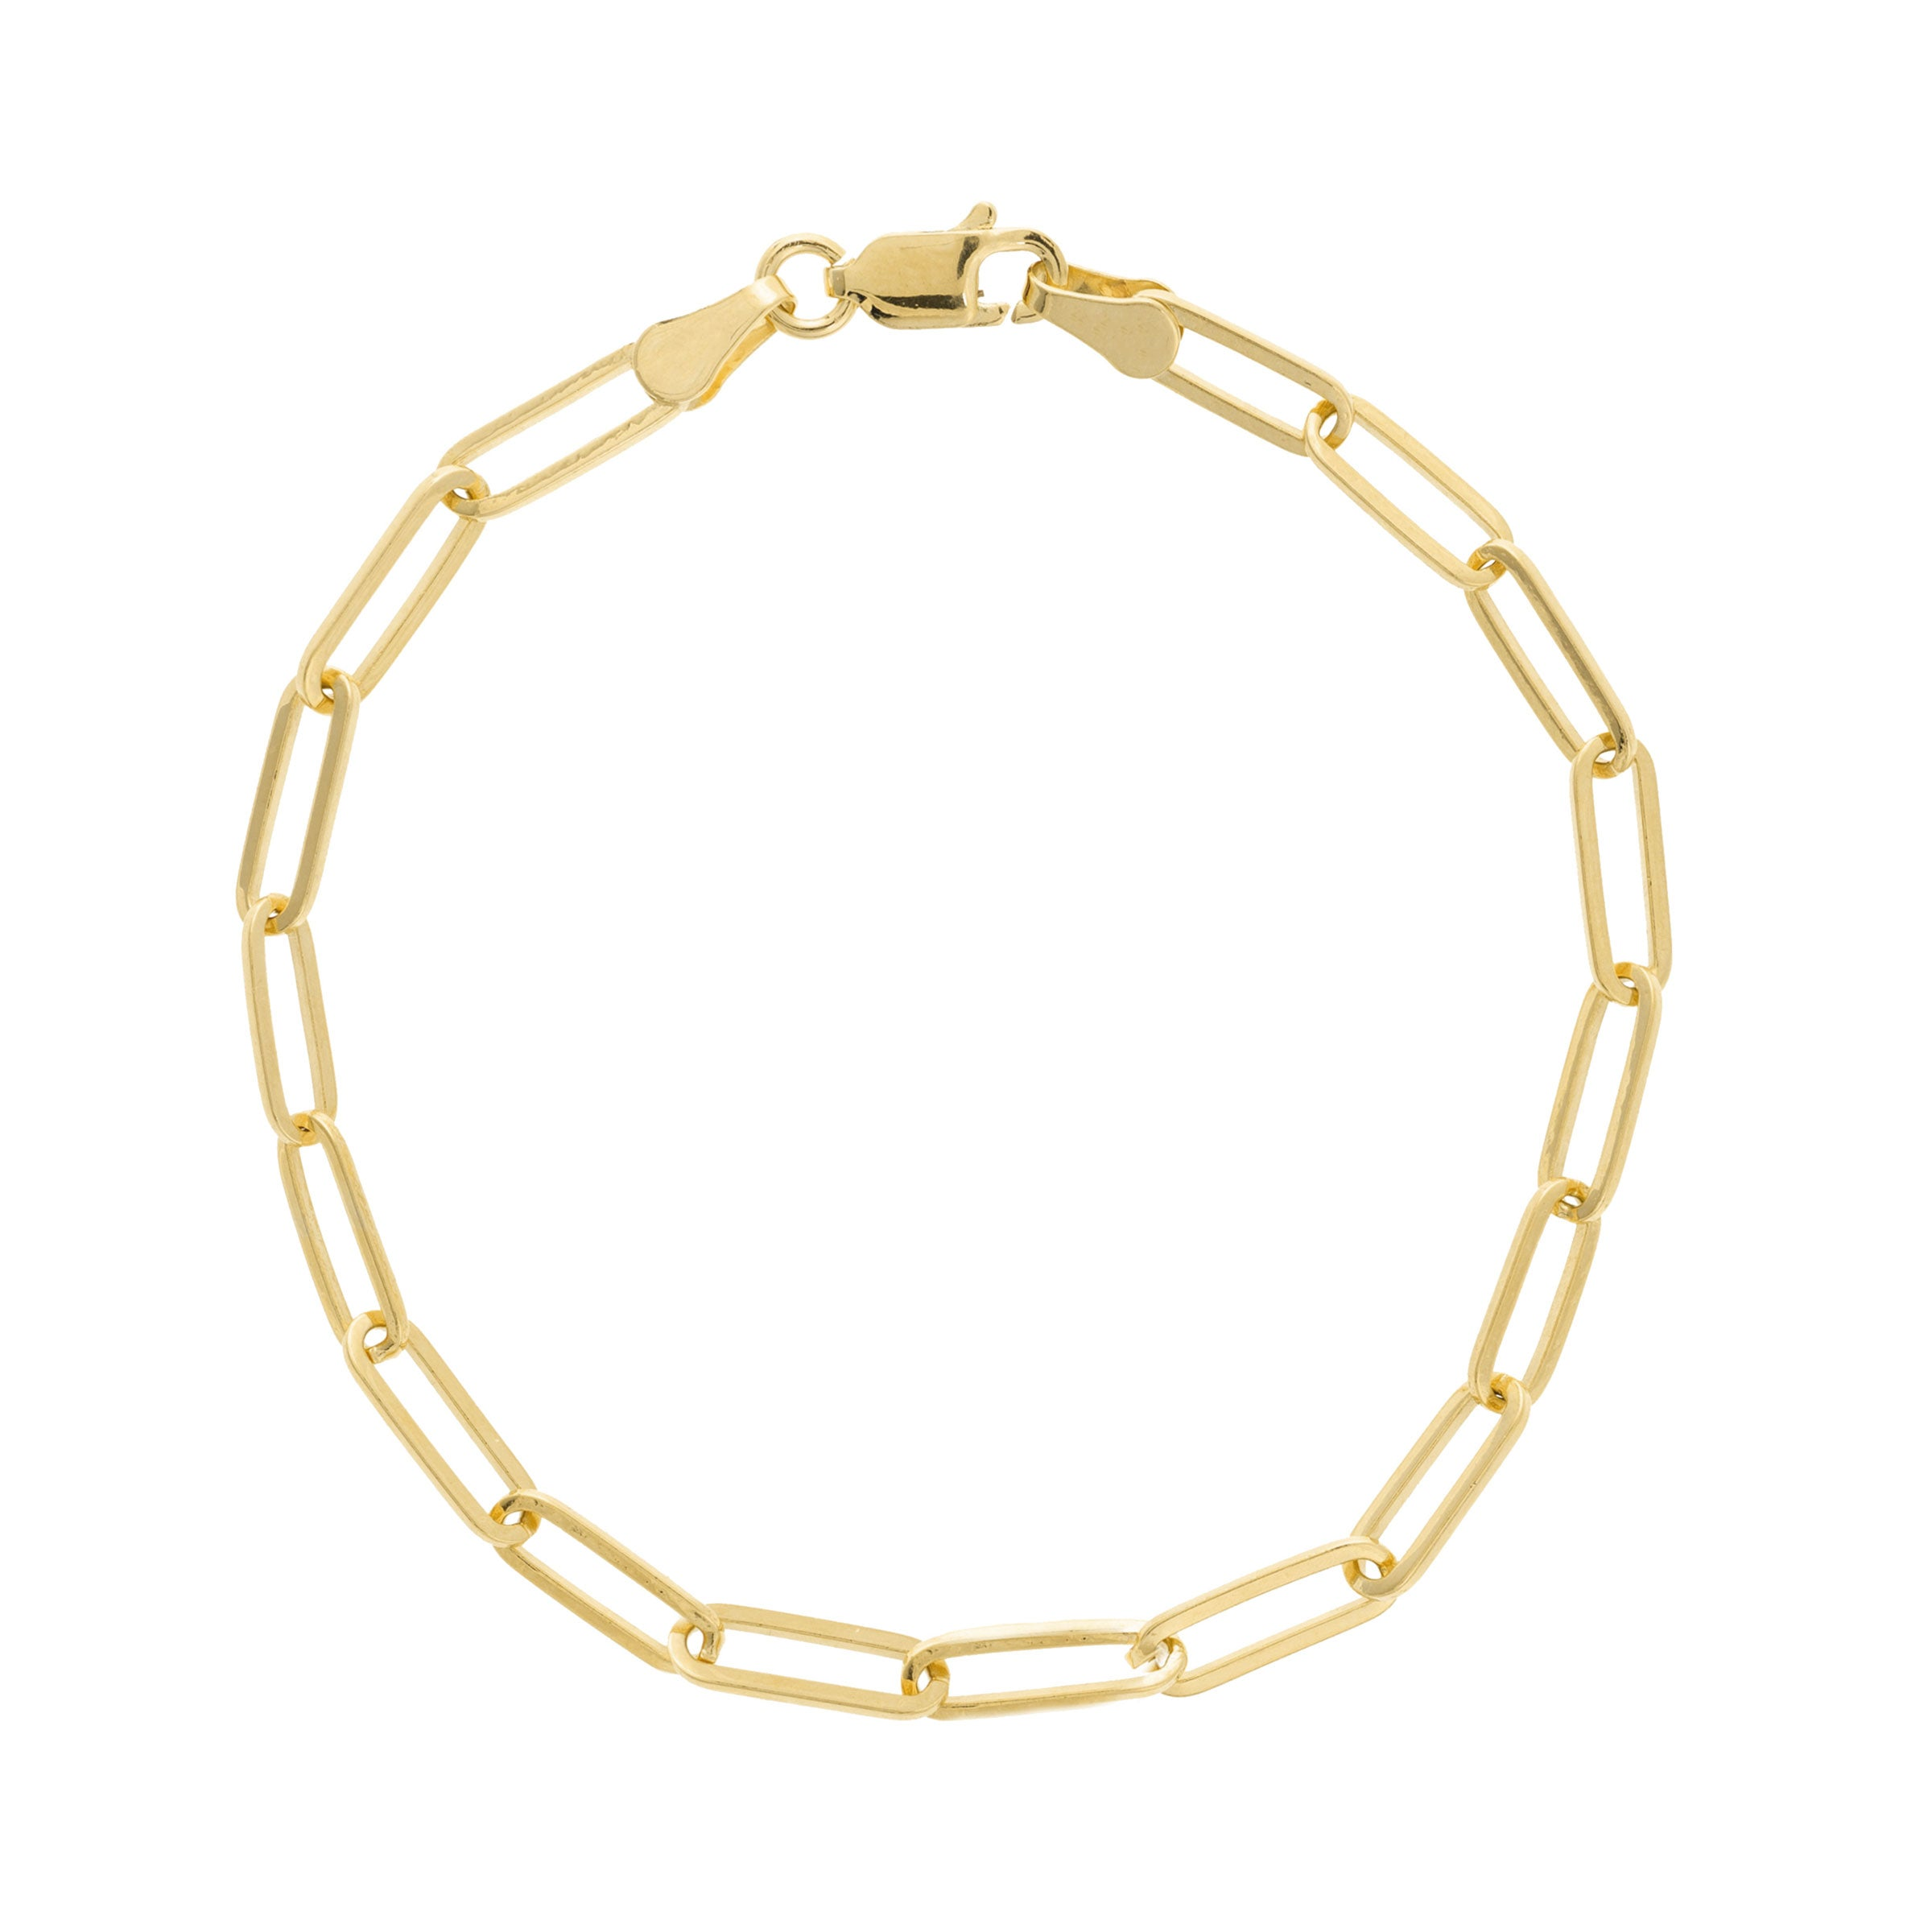 Elongated Link Chain Flexible Bracelet, 14K Yellow Gold